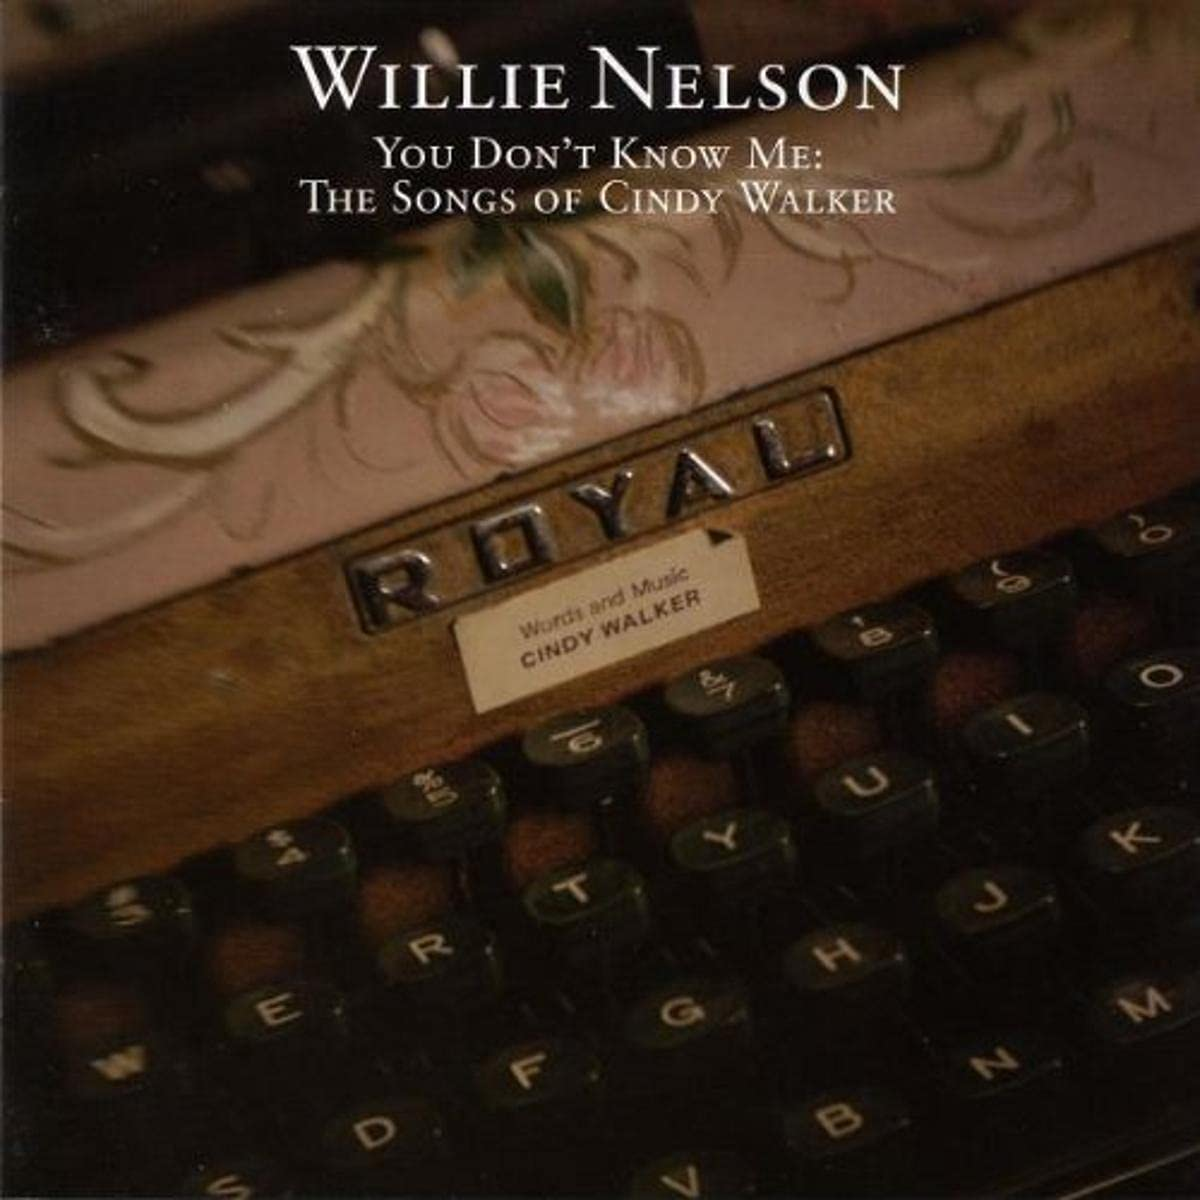 Willie Nelson, You Don't Know Me: The Songs Of Cindy Walker